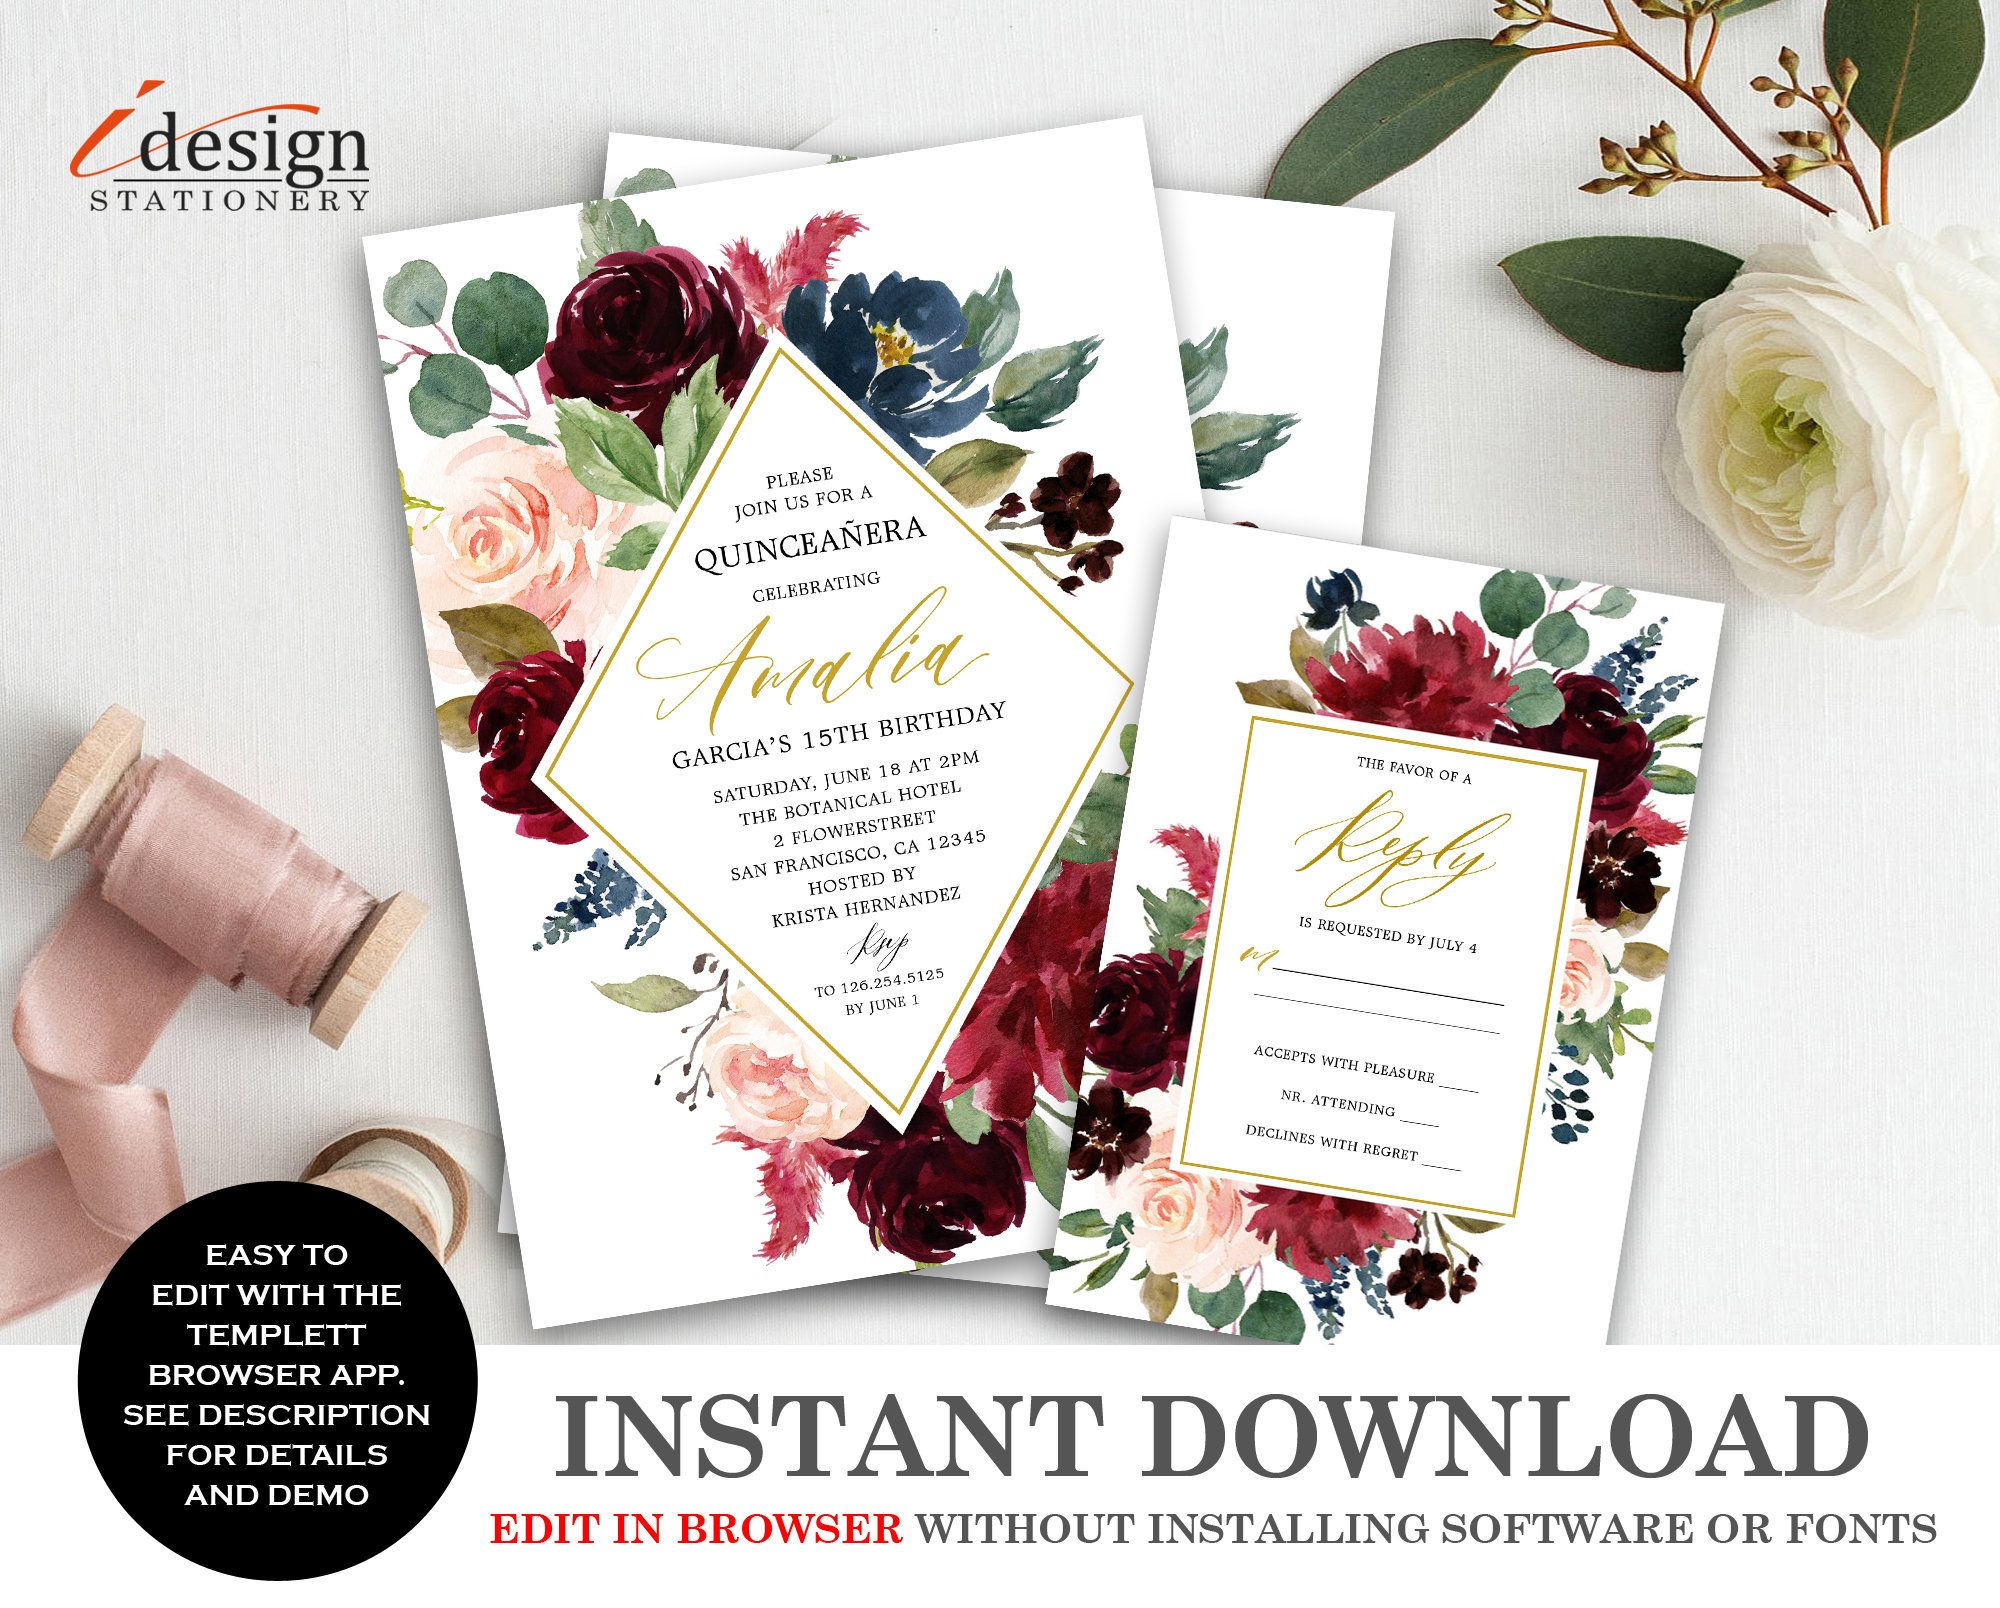 Floral Quinceanera Invitation With Rsvp Printable Burgundy Quince Invite Quinceanera Invitations Party Invite Template Birthday Party Invitation Templates